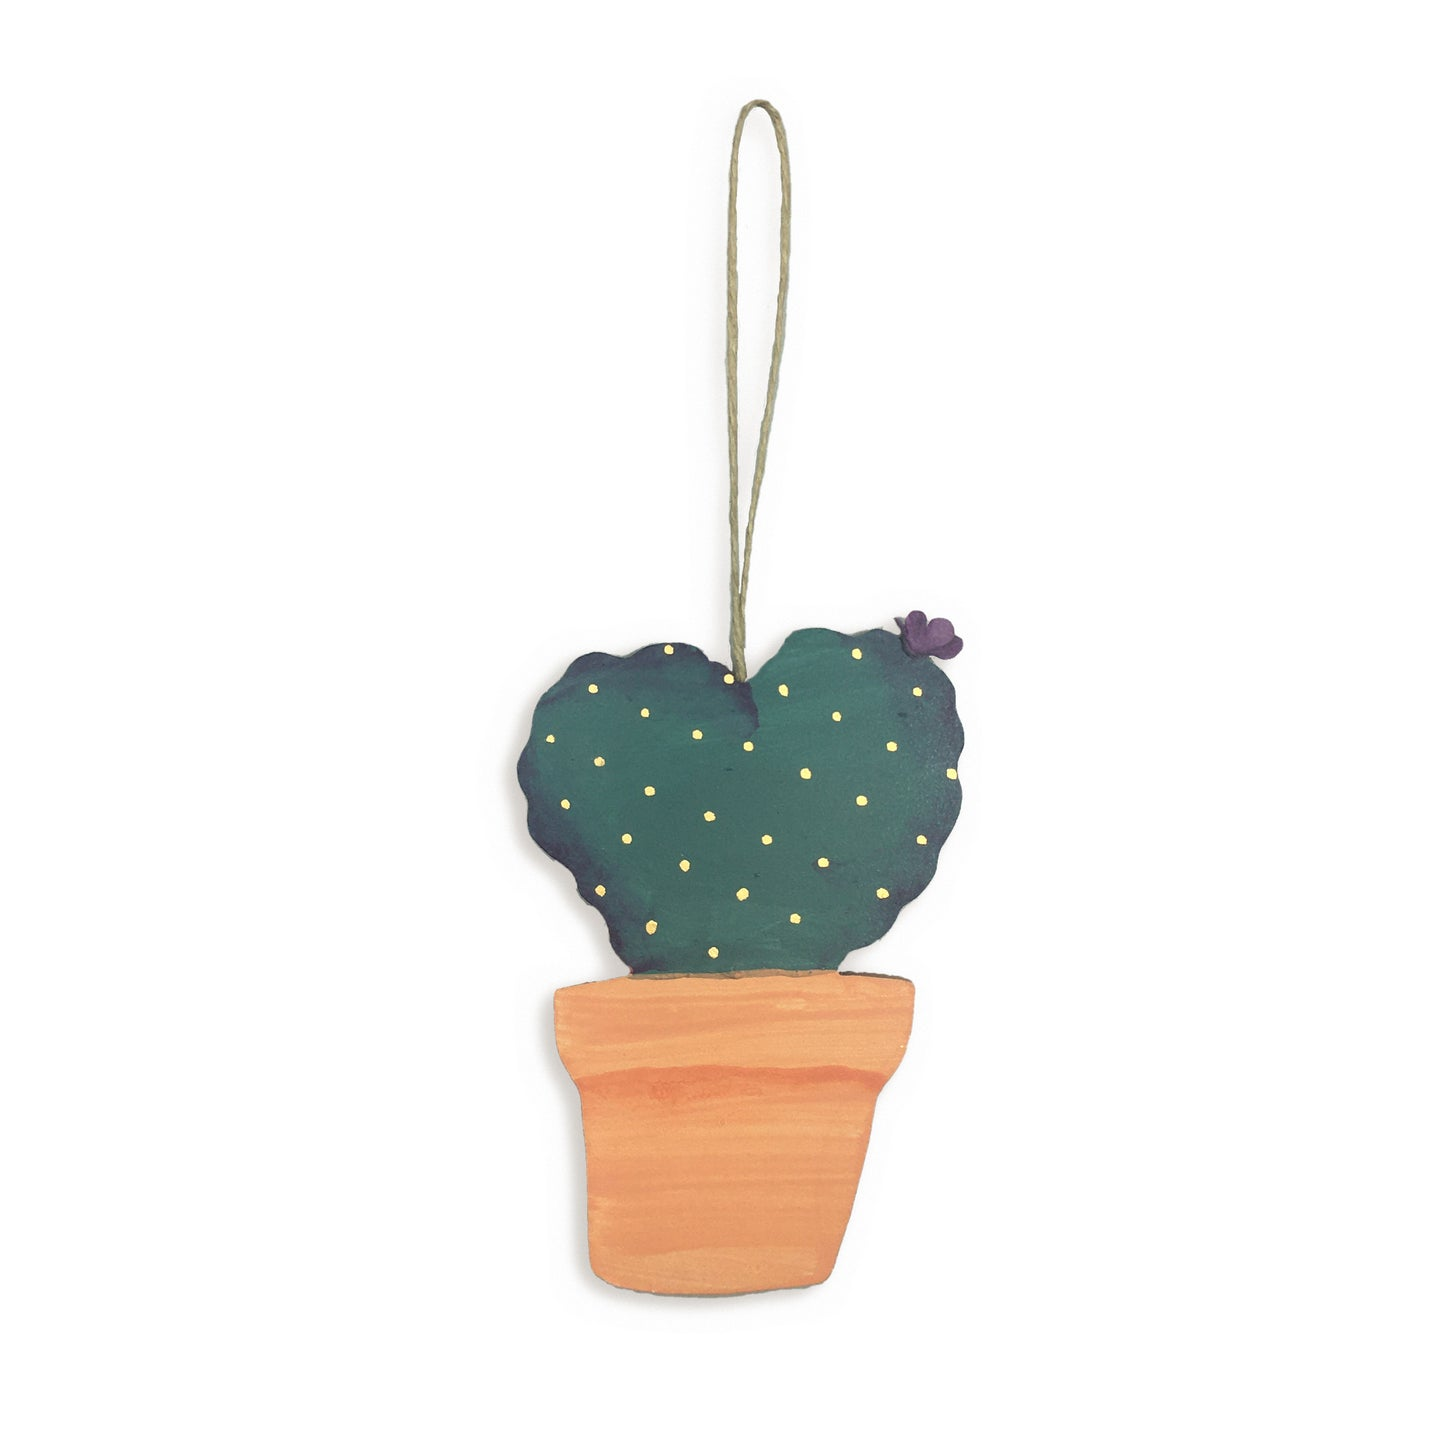 Wooden cactus hanging tag - prickly pear